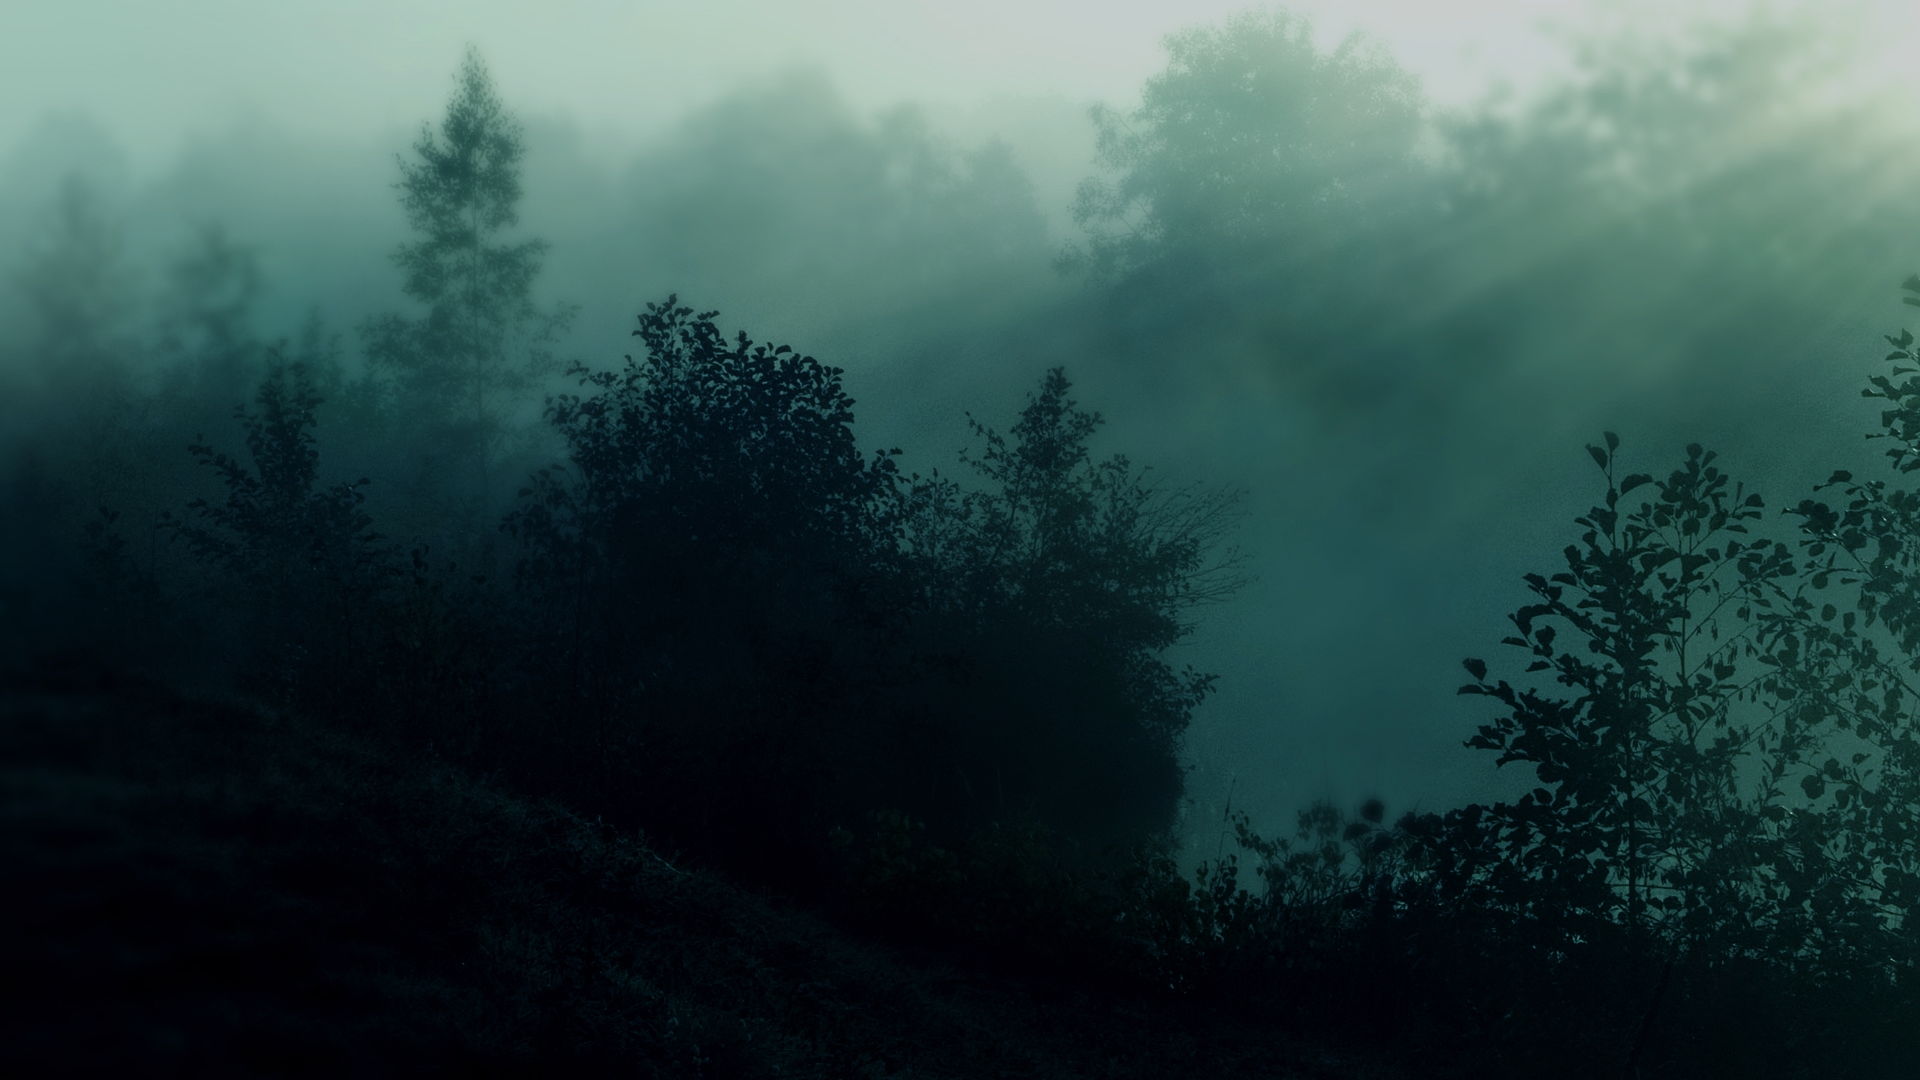 Dark Nature Wallpaper Download Wallpaper Nature Trees Dark Forest Mist Sunlight 1920x1080 Hd Foggy Forest Dark Tree Nature Wallpaper